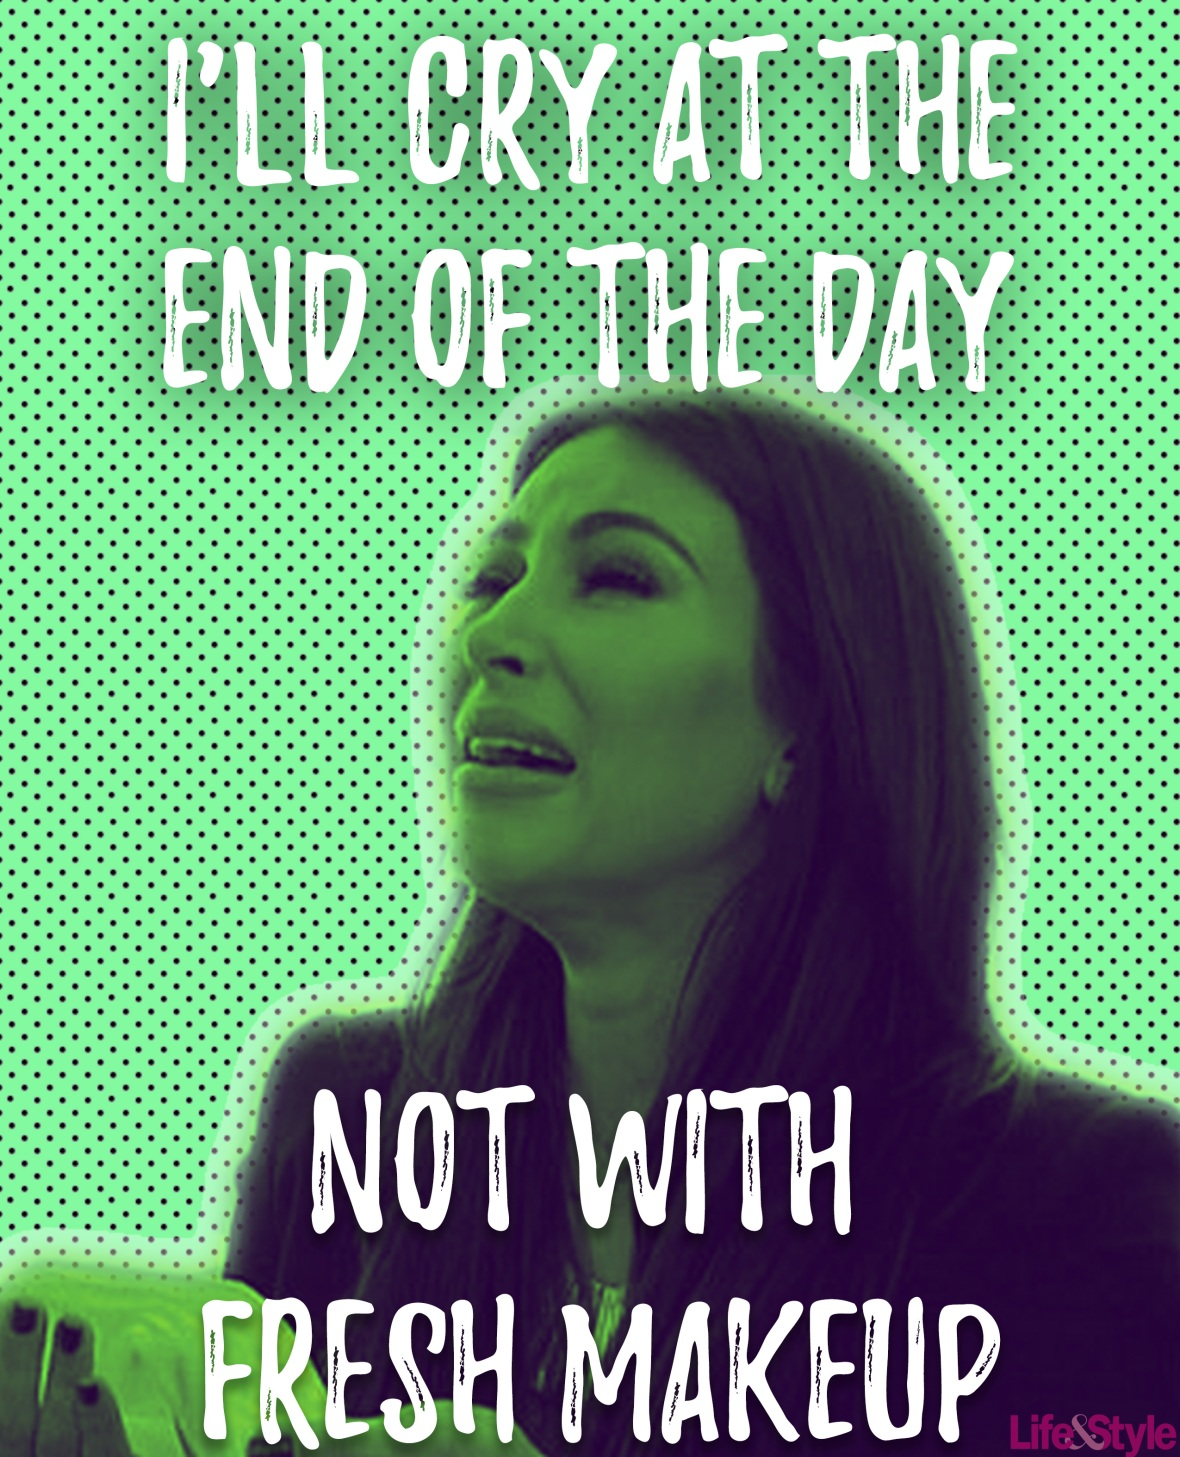 kim kardashian cry at the end of the day